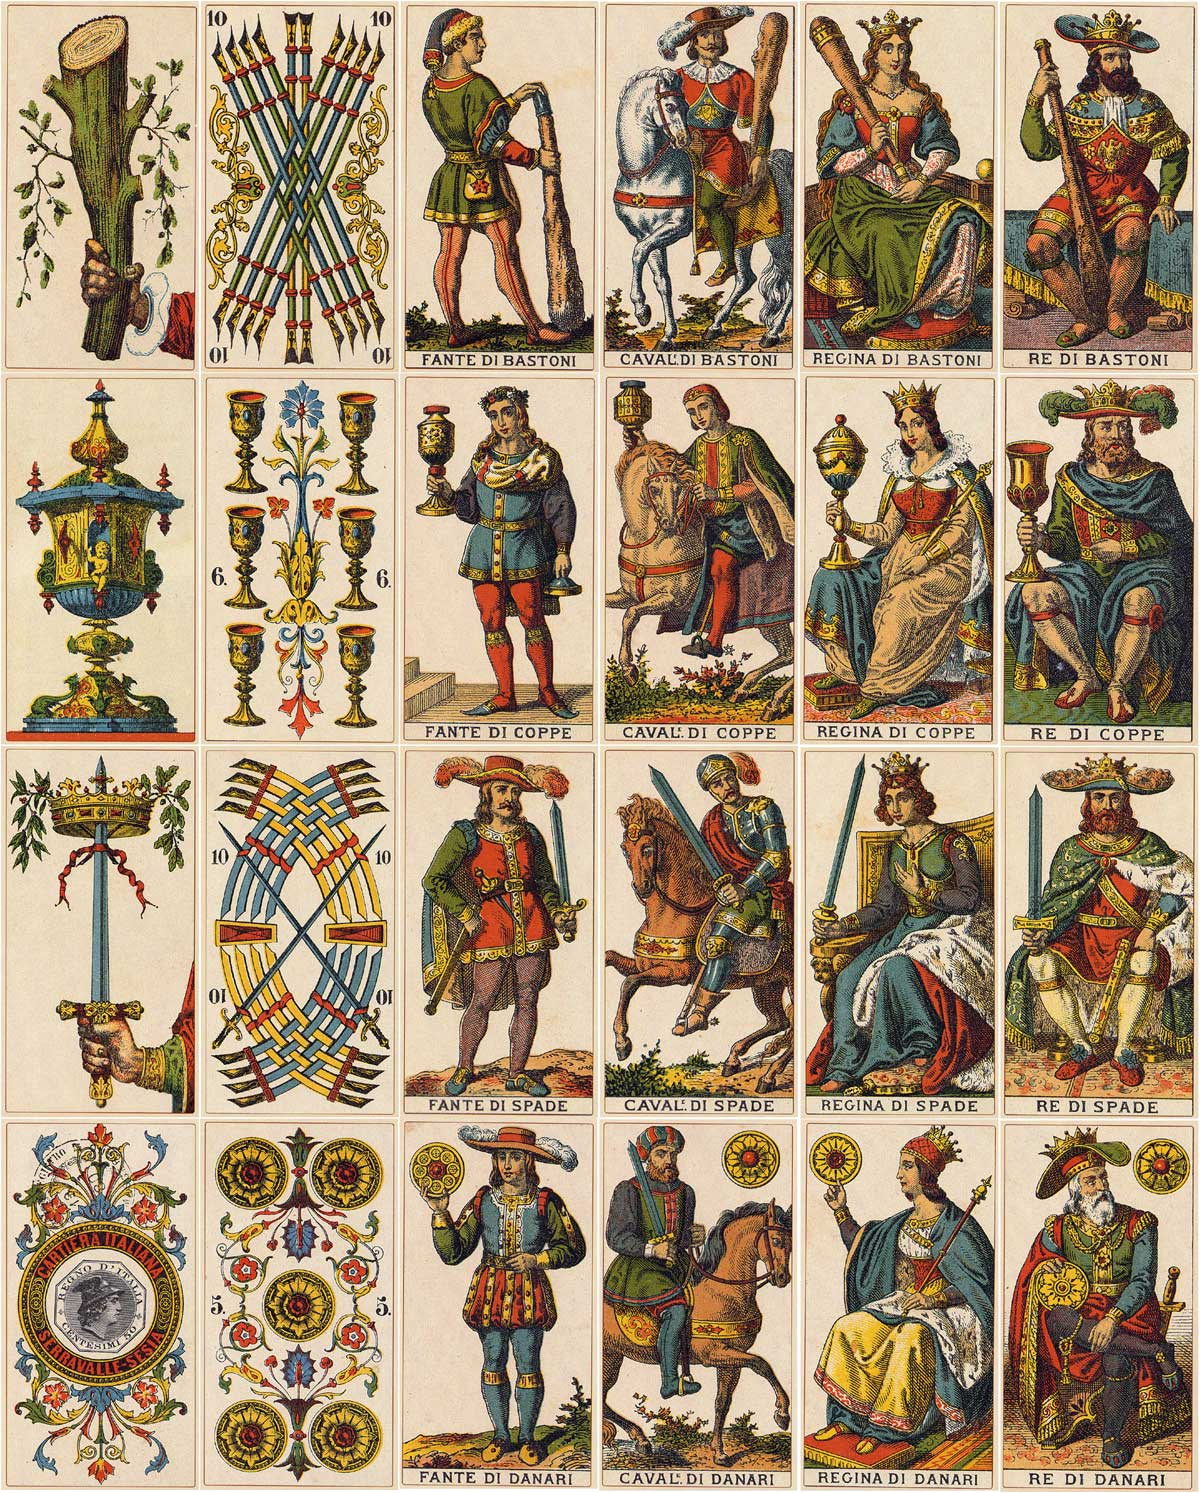 Serravalle-Sesia Tarot originally published by Fratelli Avondo, c.1880; facsimile edition by Lo Scarabeo, 2000